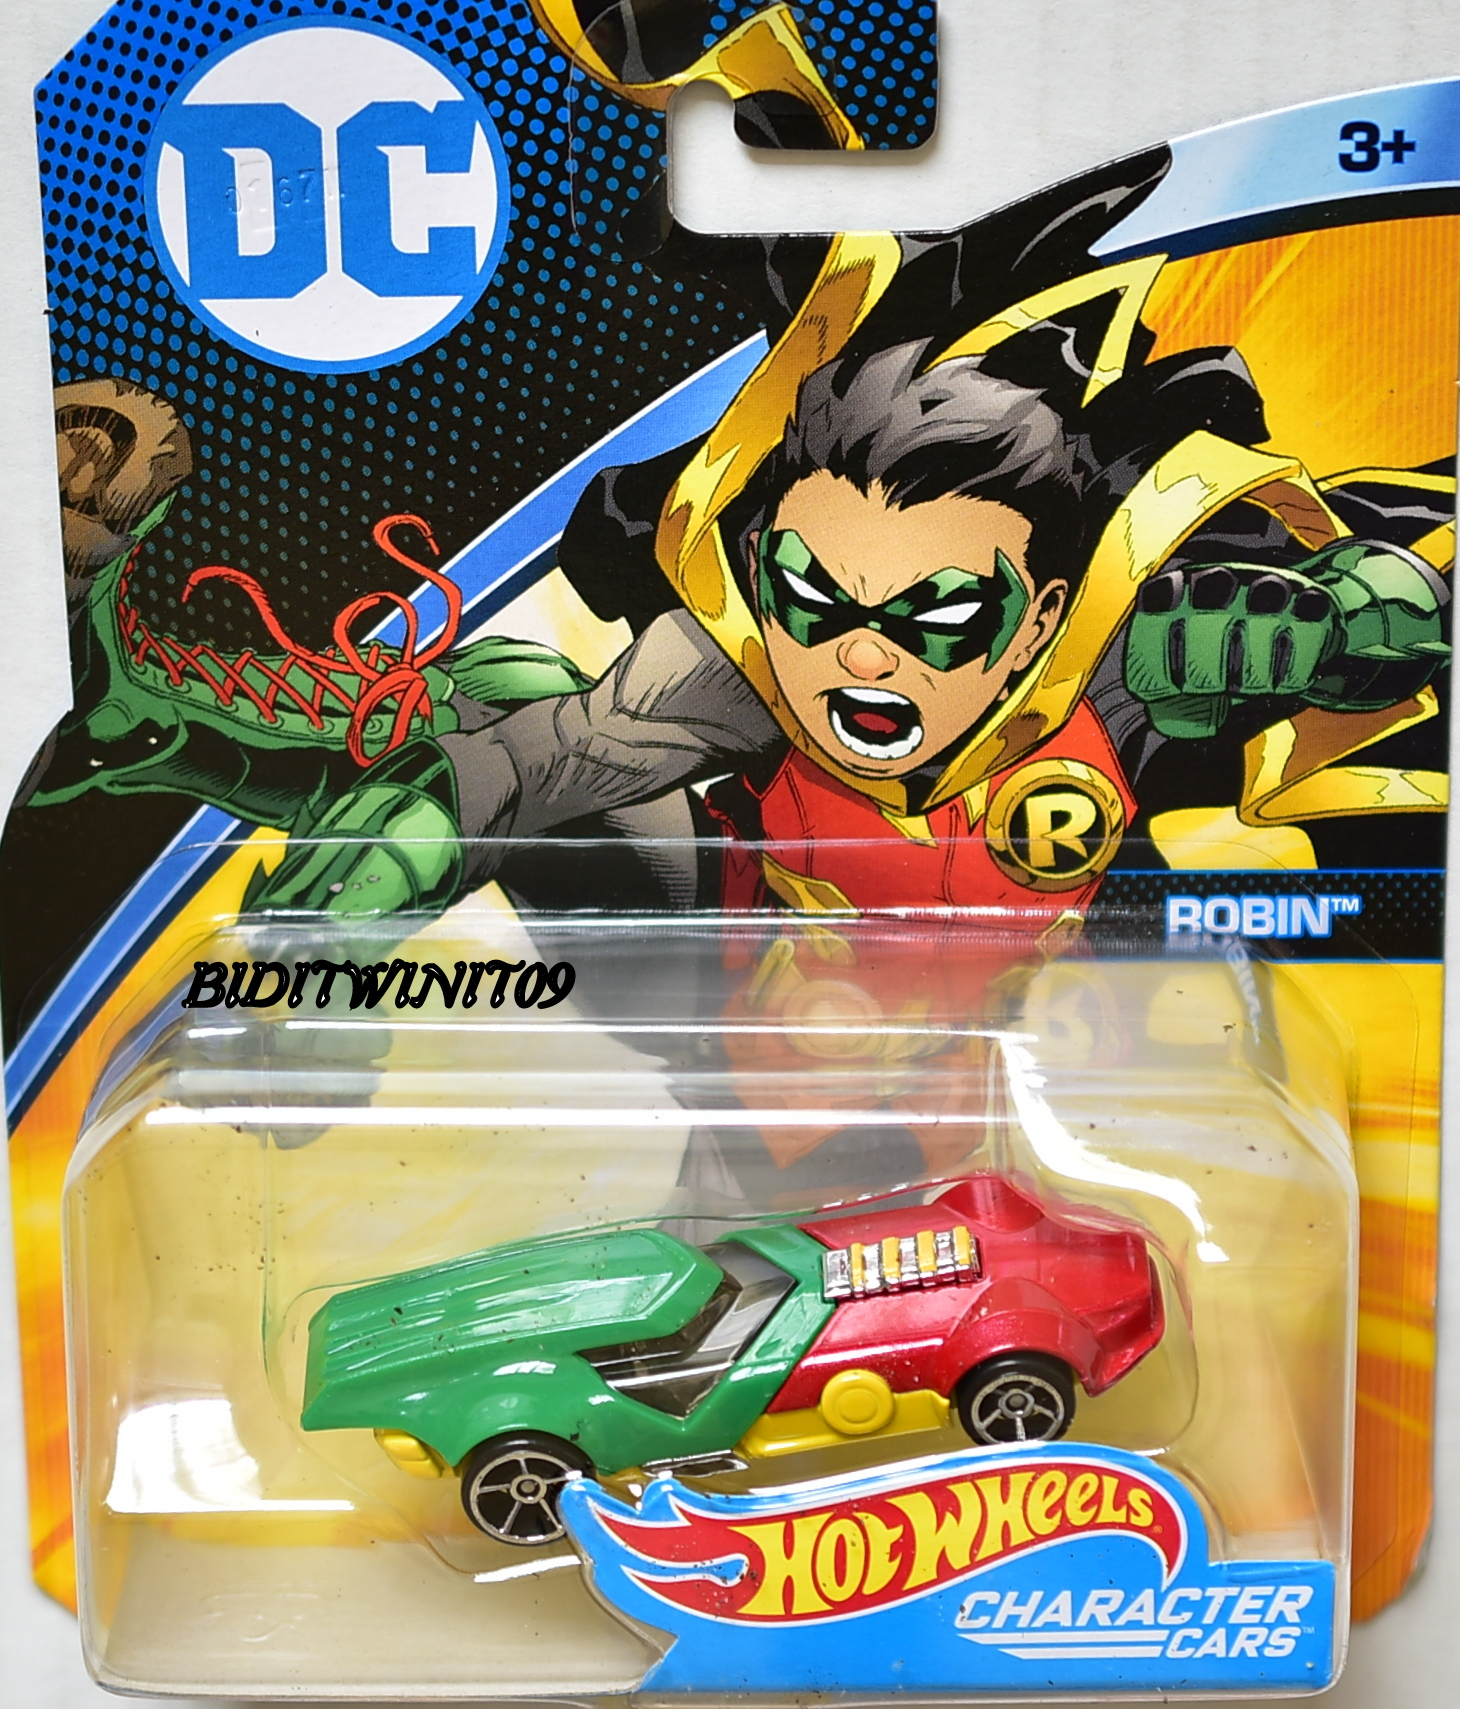 HOT WHEELS 2017 DC COMICS ROBIN CHARACTER CARS